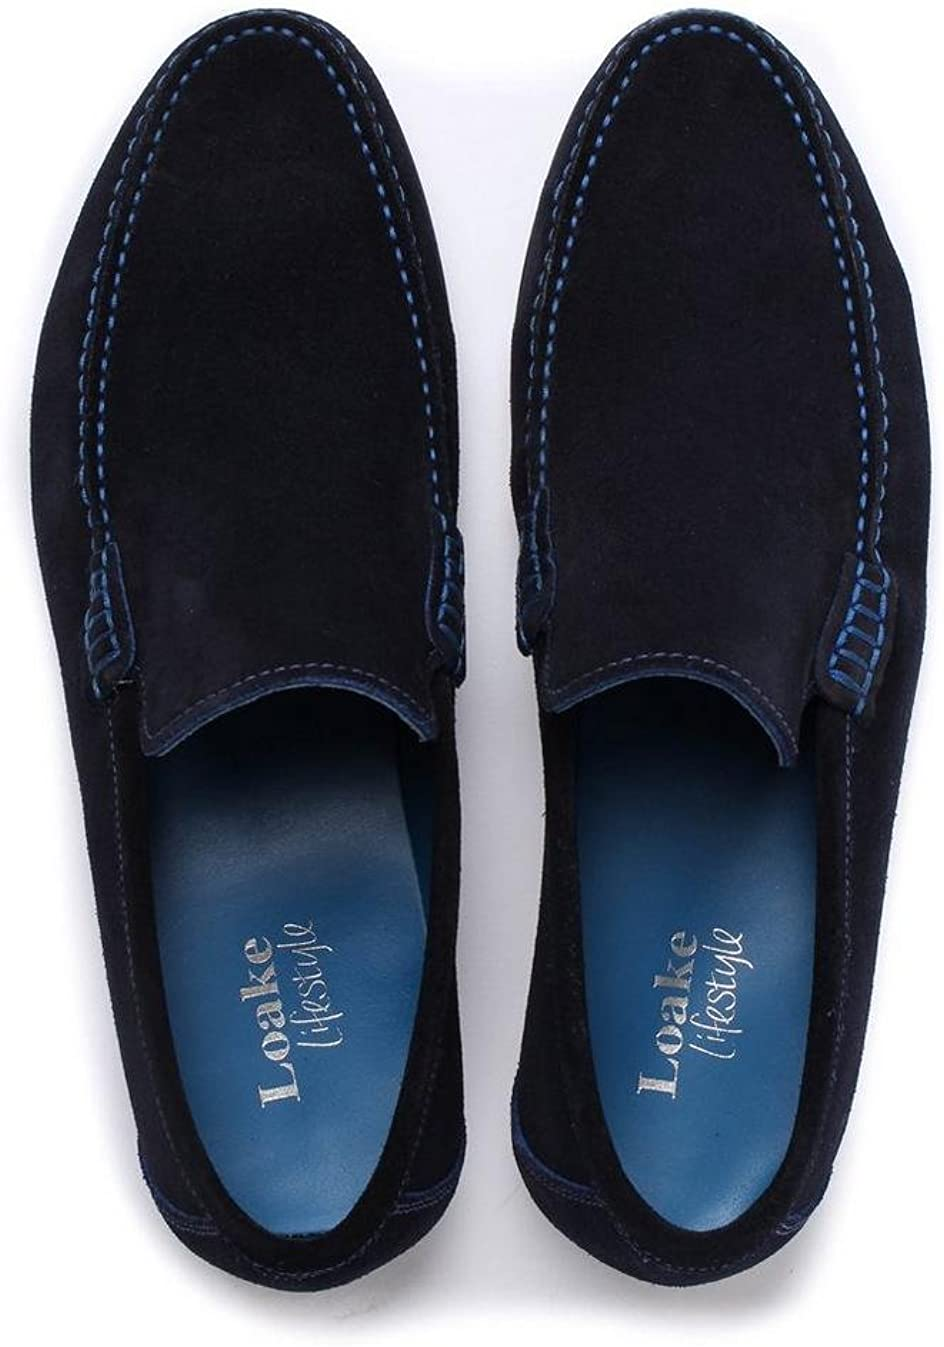 Loake Mens Suede Nicholson Loafers UK 9.5 Blue